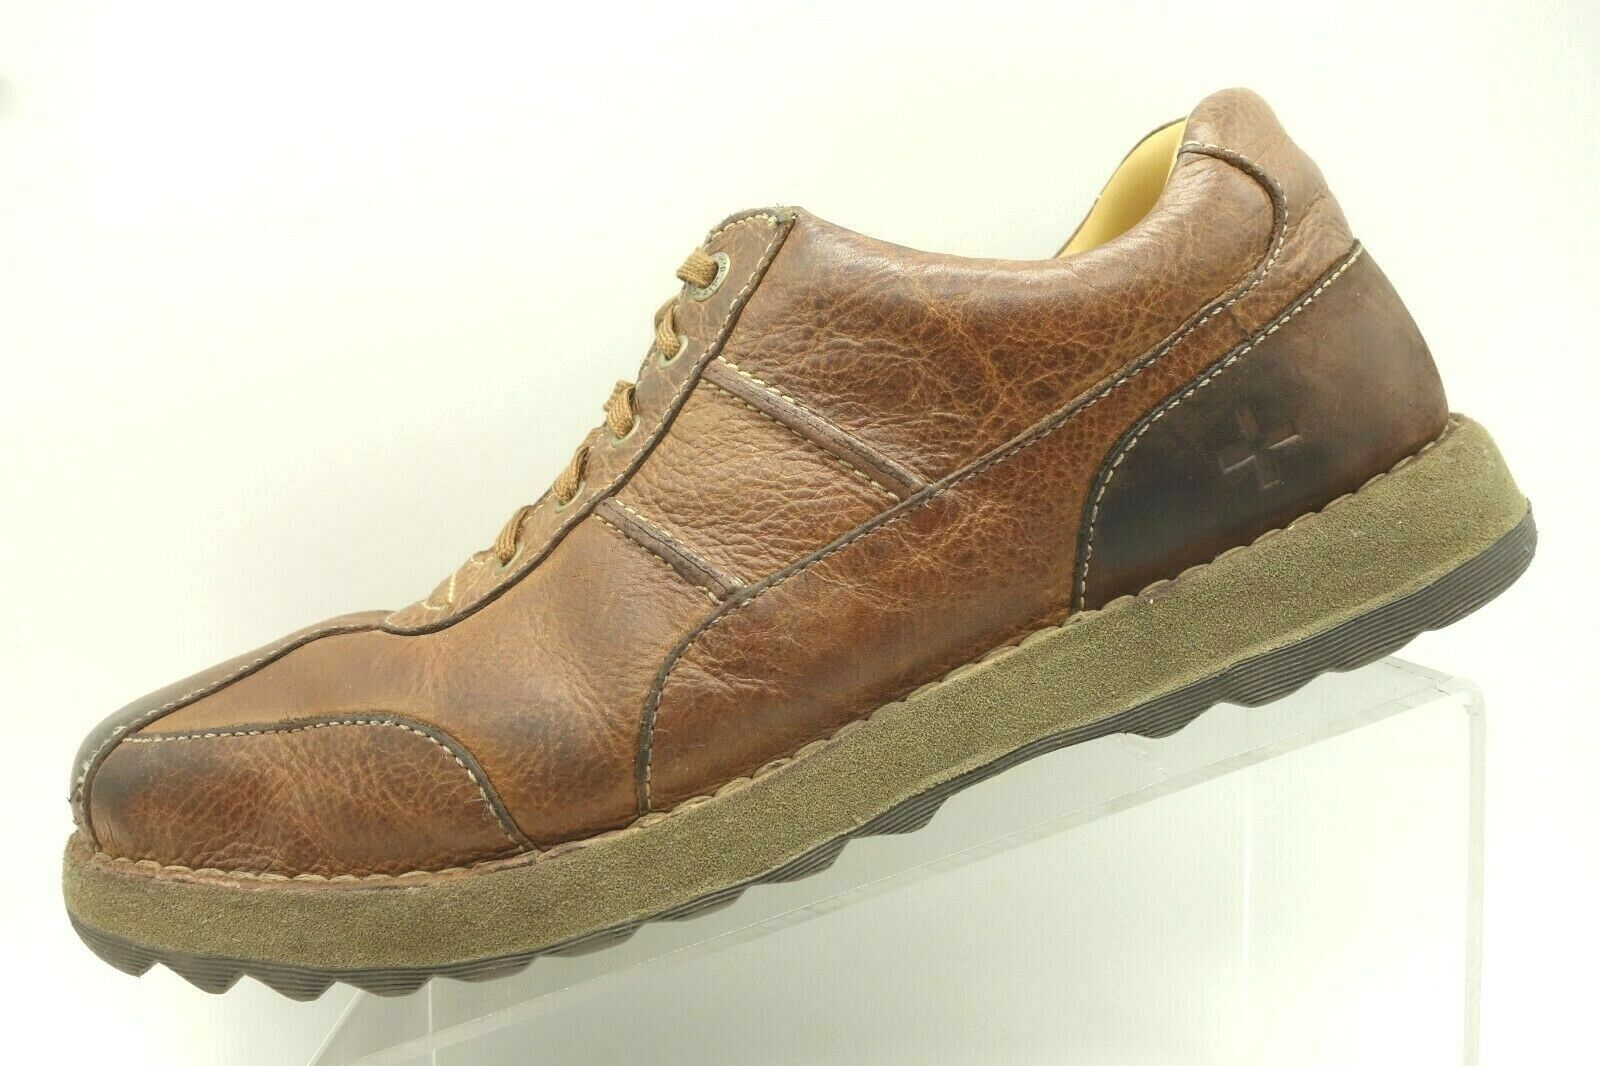 Dr Martens Brown Leather Lace Up Casual Comfort Oxford shoes Mens 13 UK   US 14